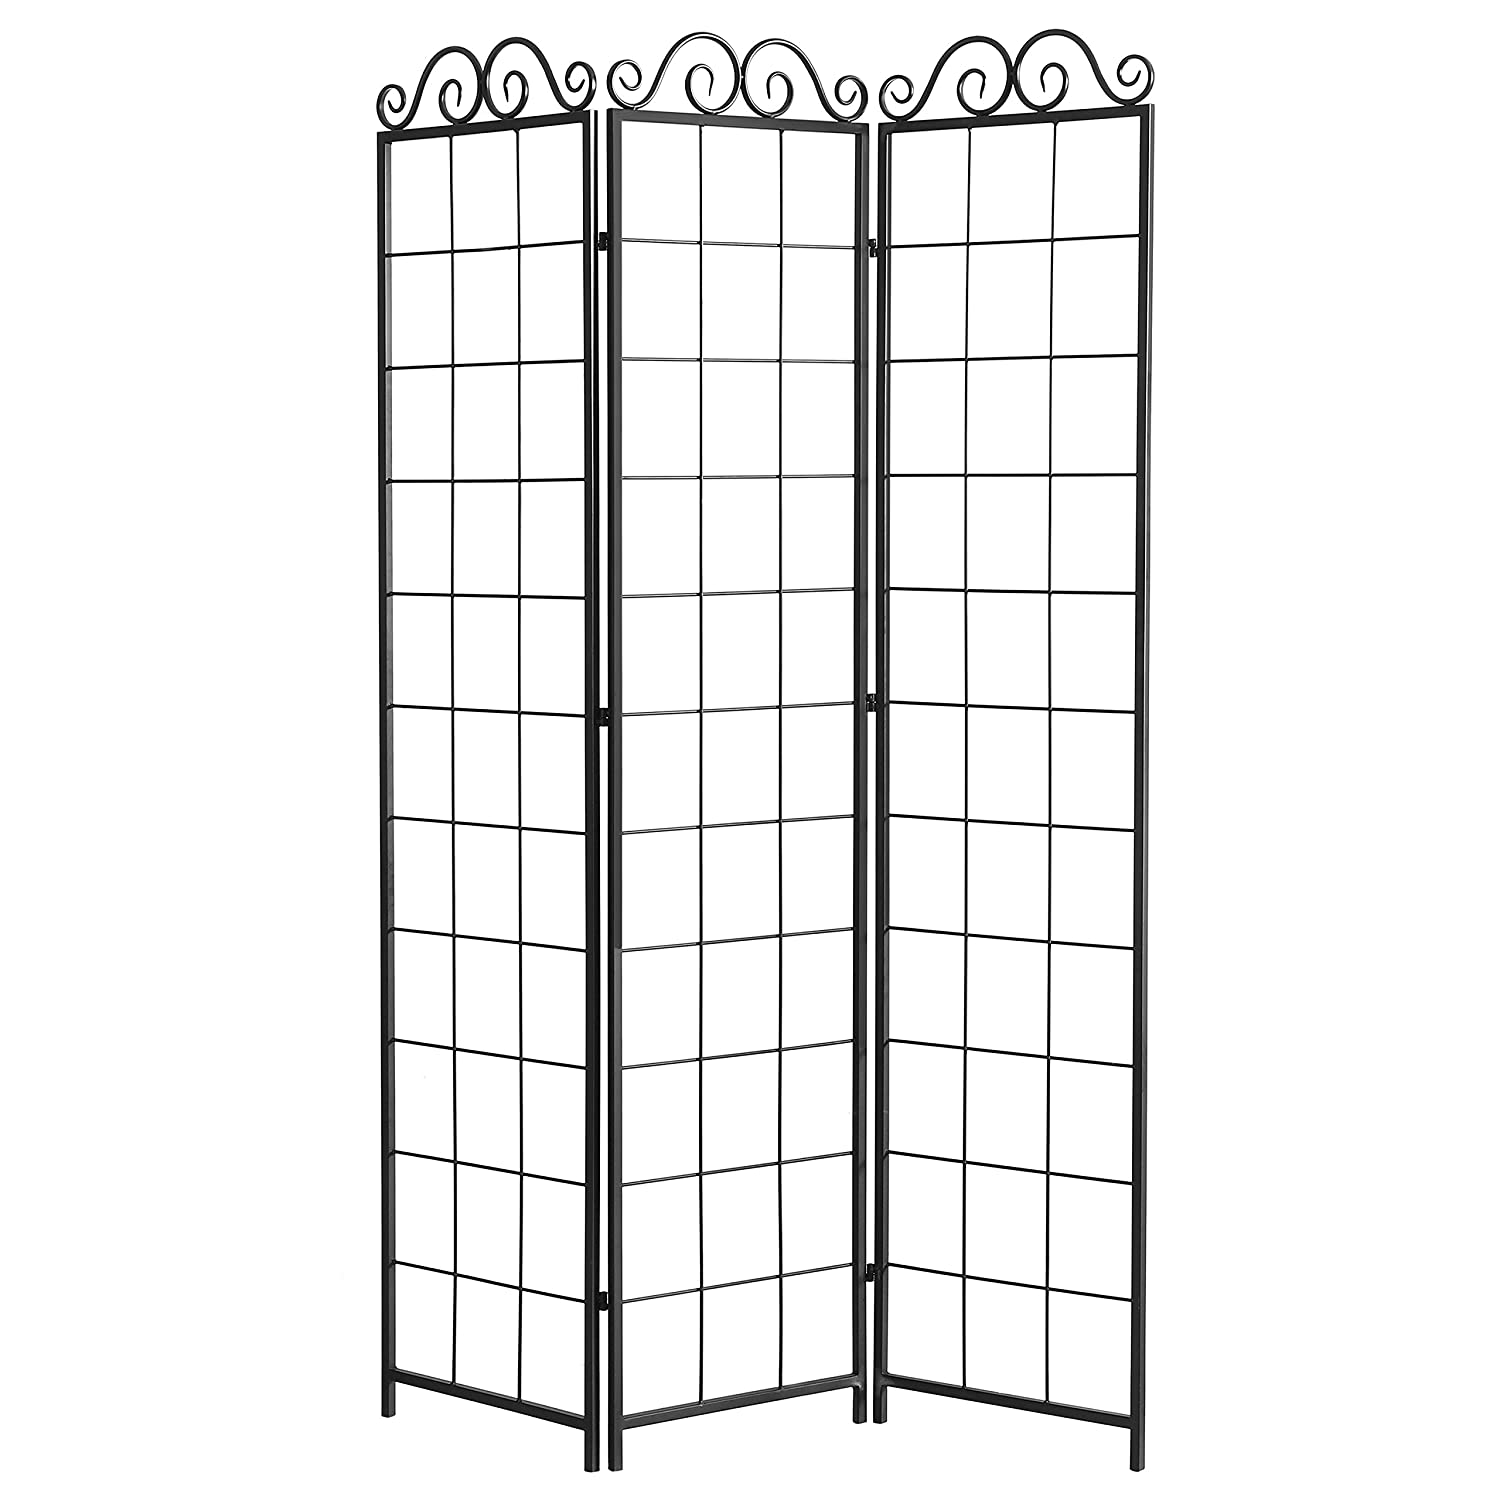 3-Panel Black Metal Wire Trellis Divider Screen (Pot Holders Sold Separately)